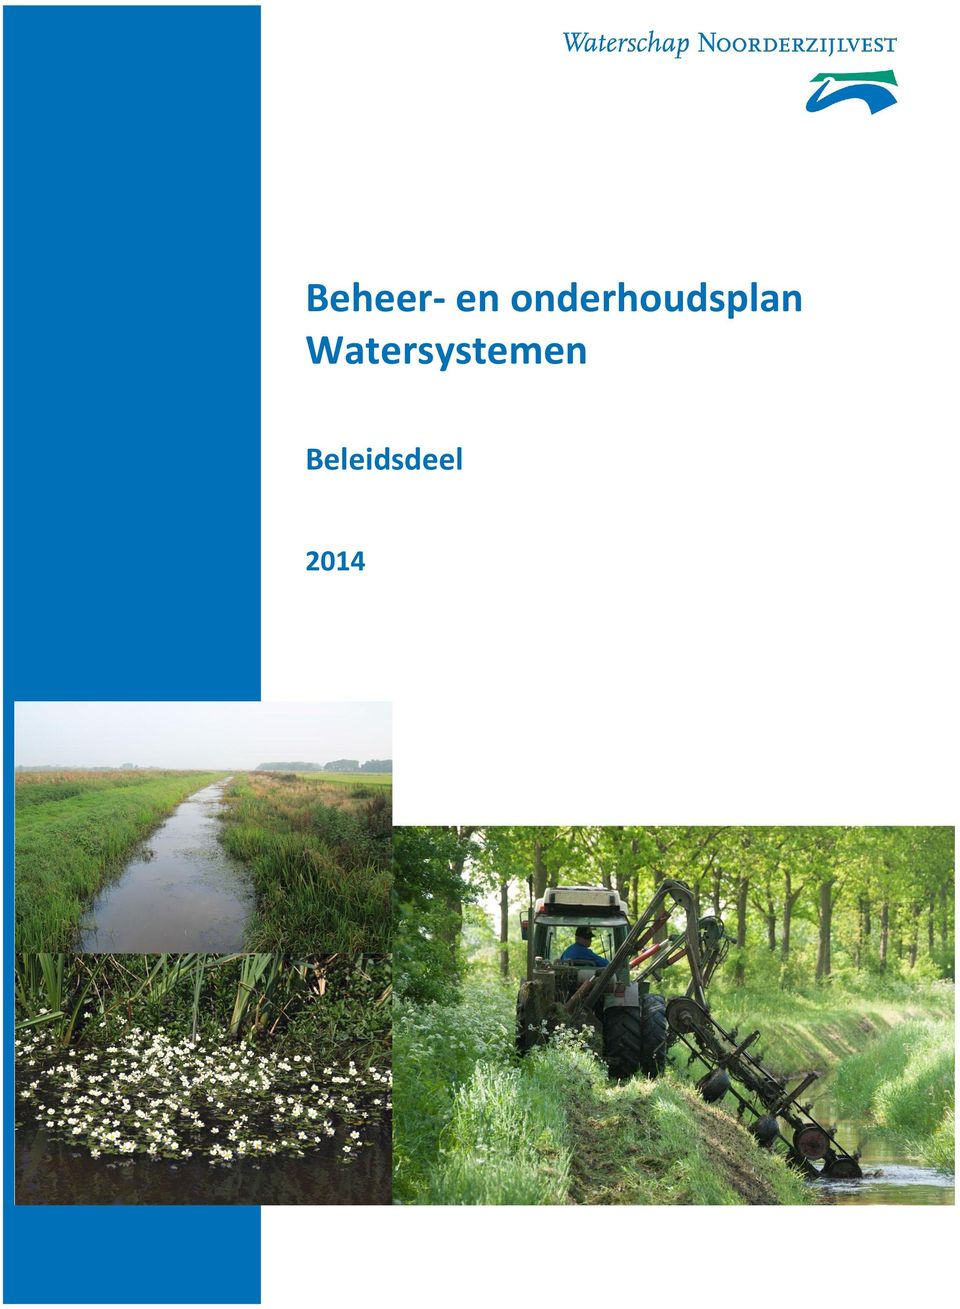 Watersystemen